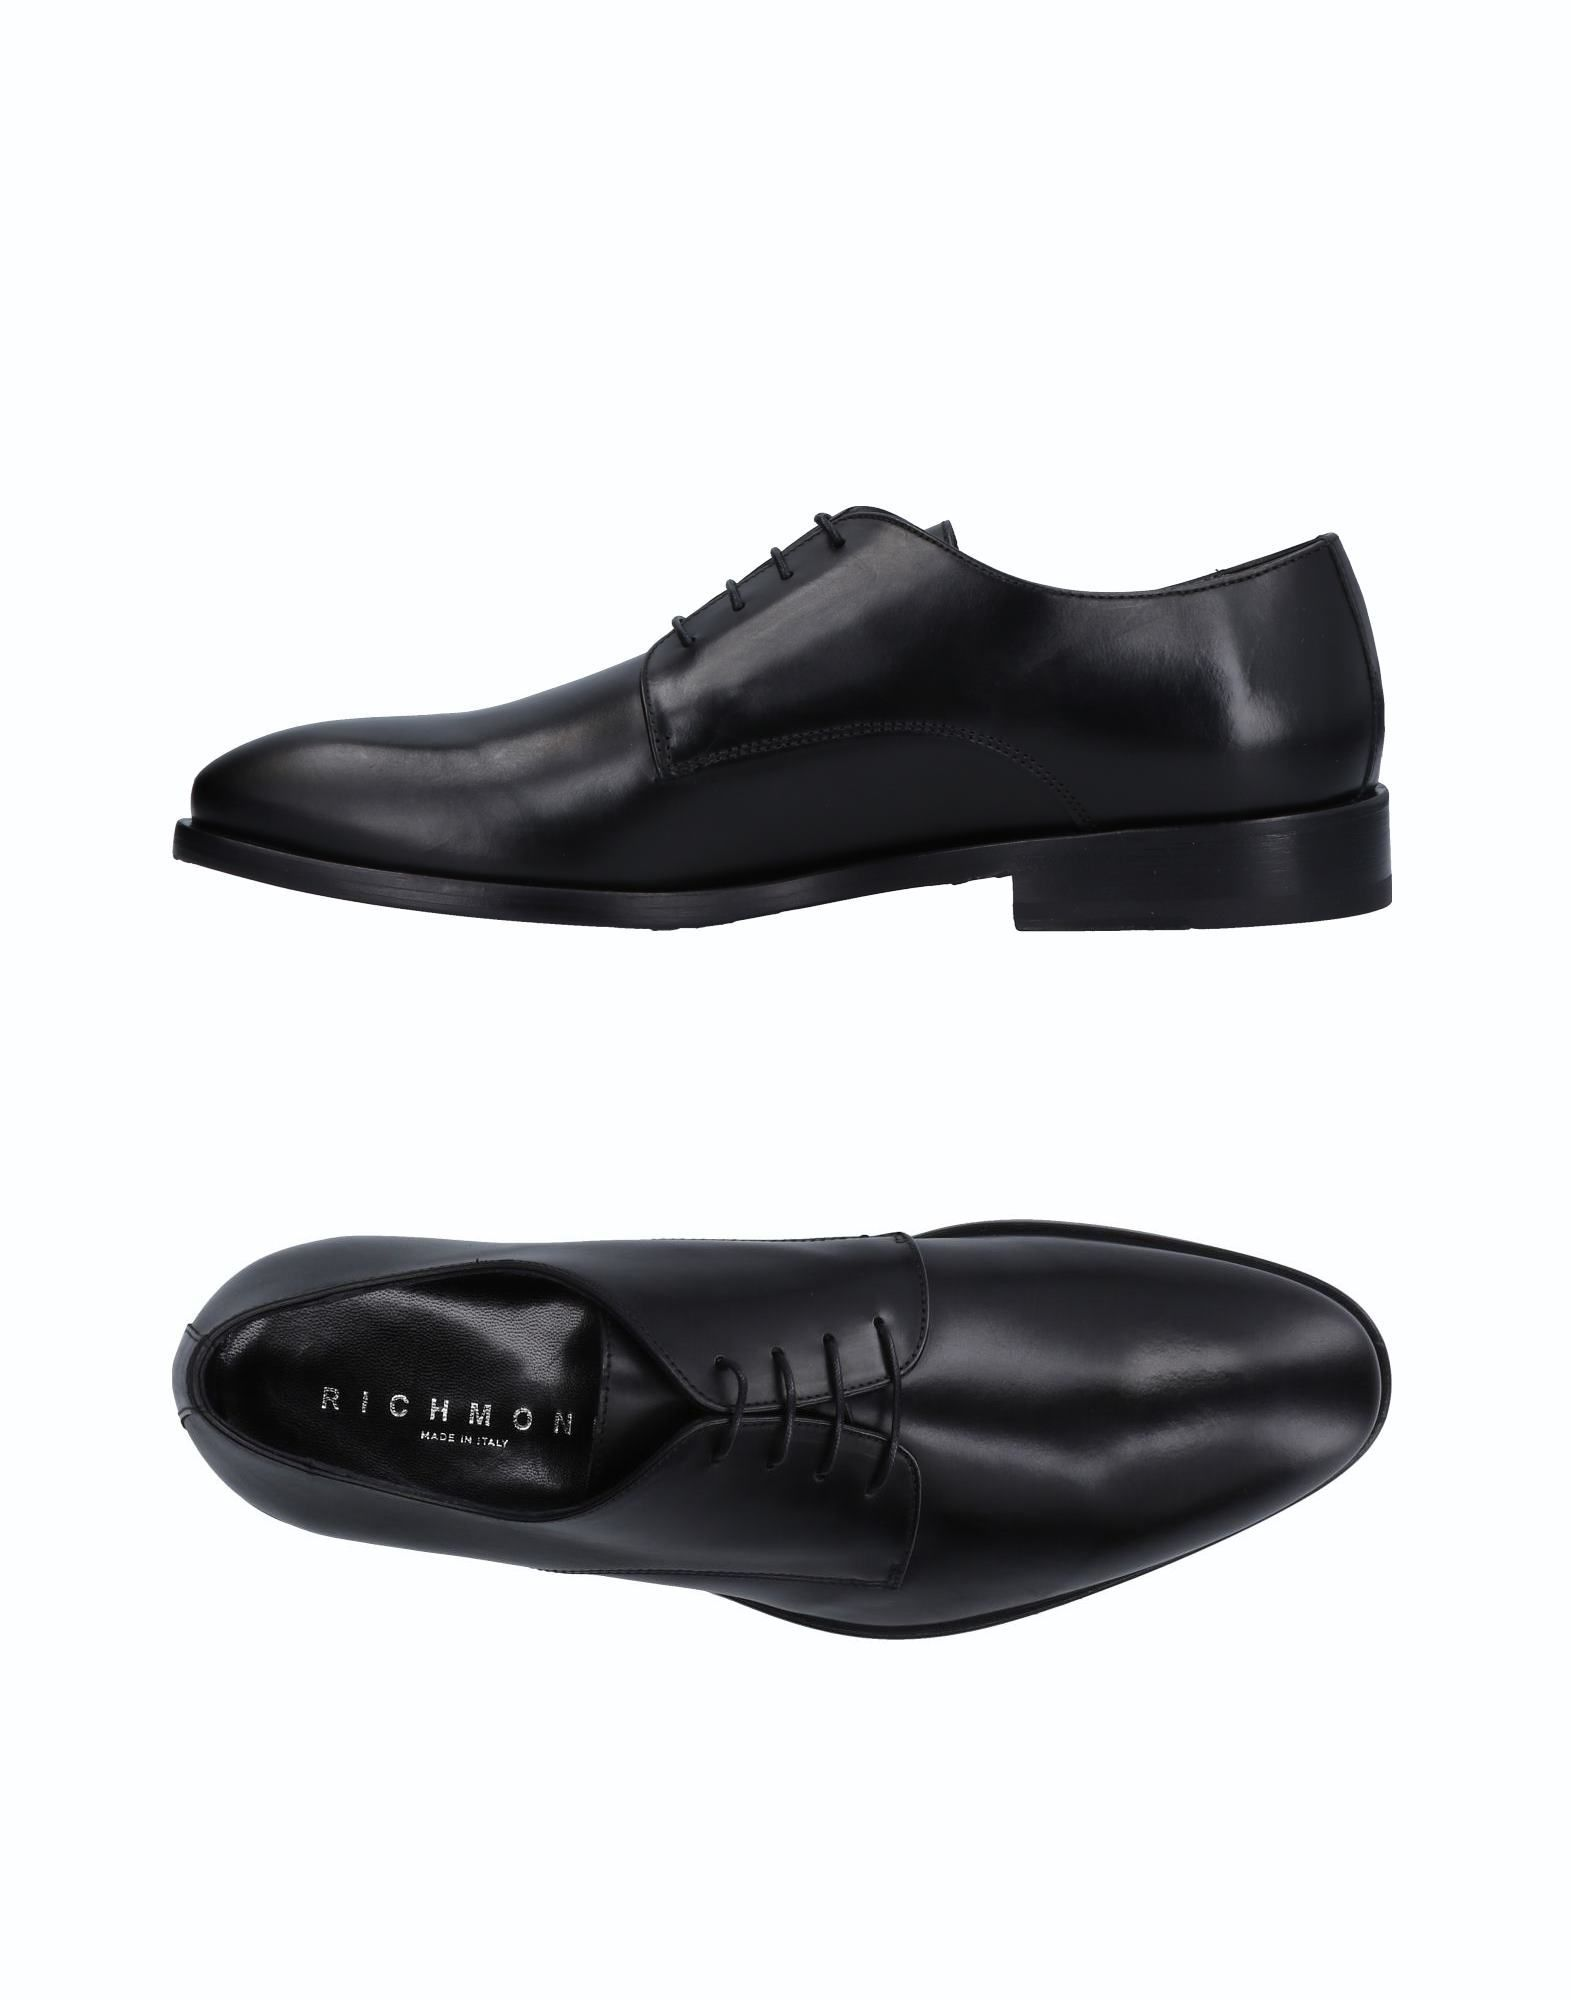 RICHMOND Laced Shoes in Black